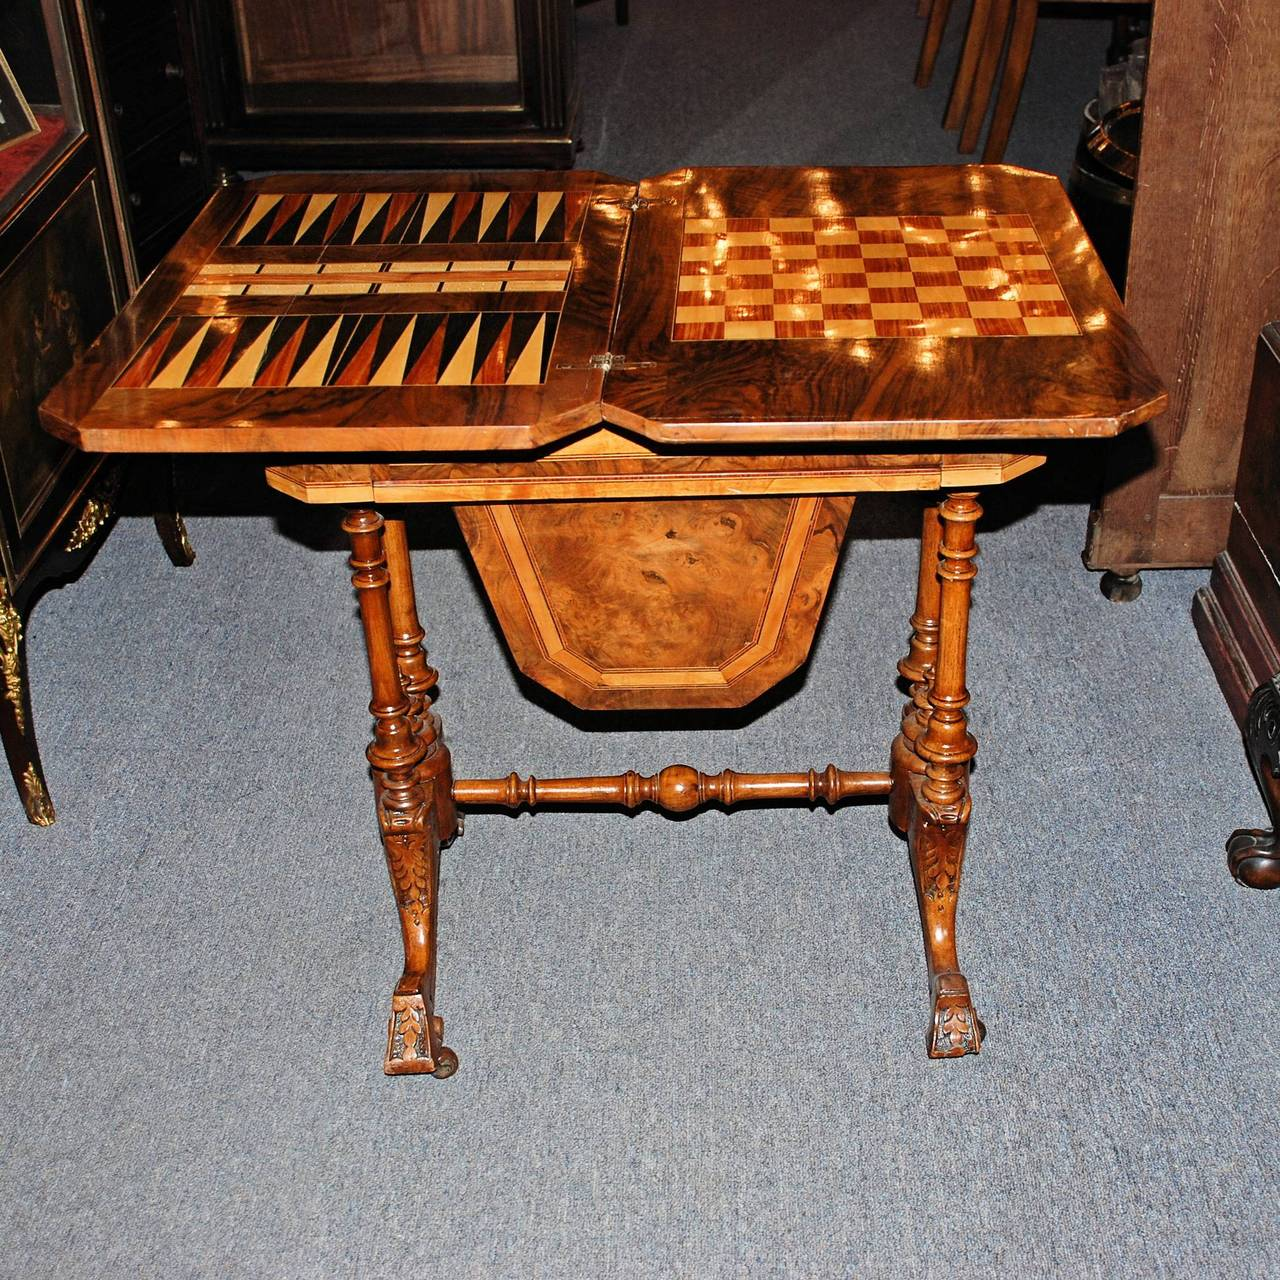 Antique English Victorian Burled Walnut Game Table For